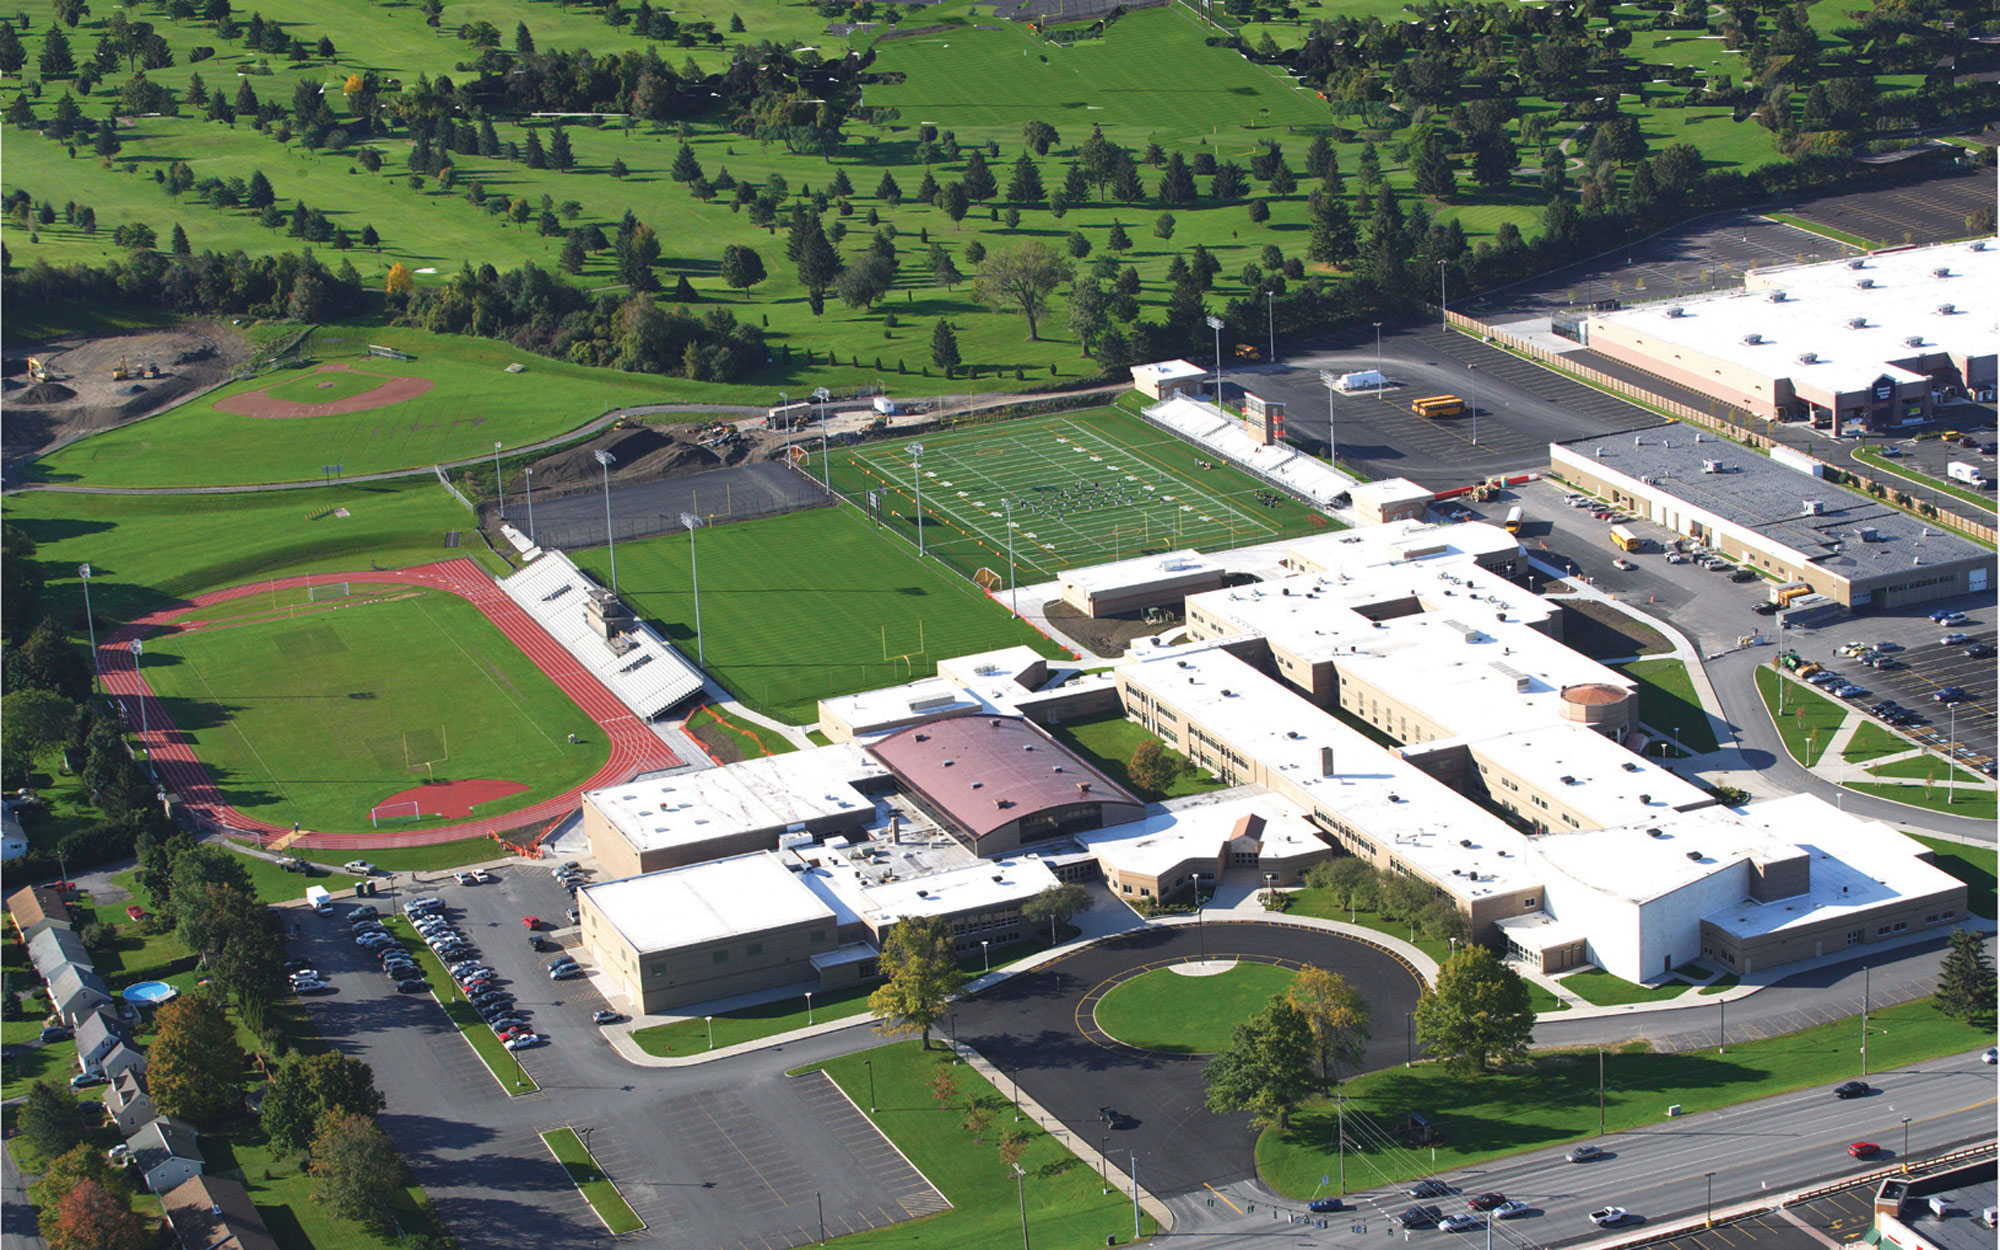 4-West-Genesee-CSD-HS-Aerial-View